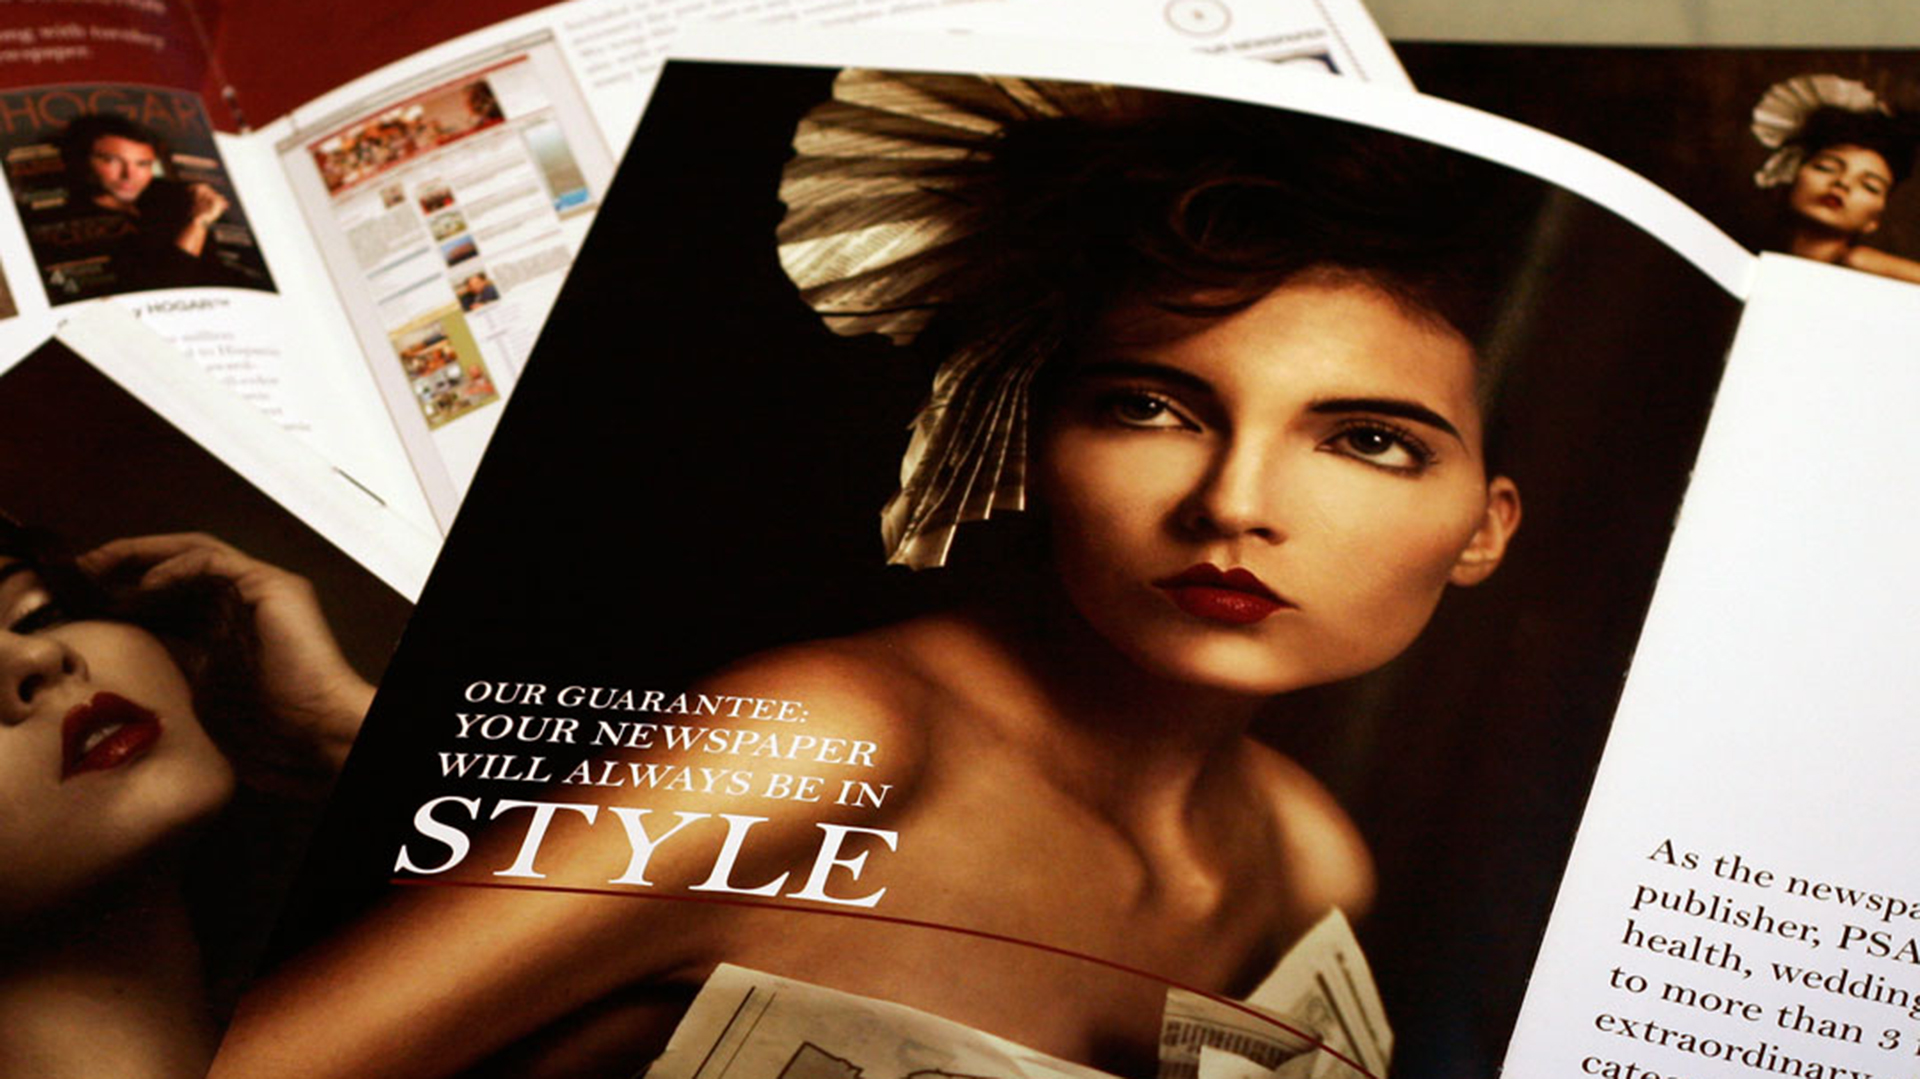 Magazine open to photo of woman wearing newspaper dress and hat on top of other open magazines